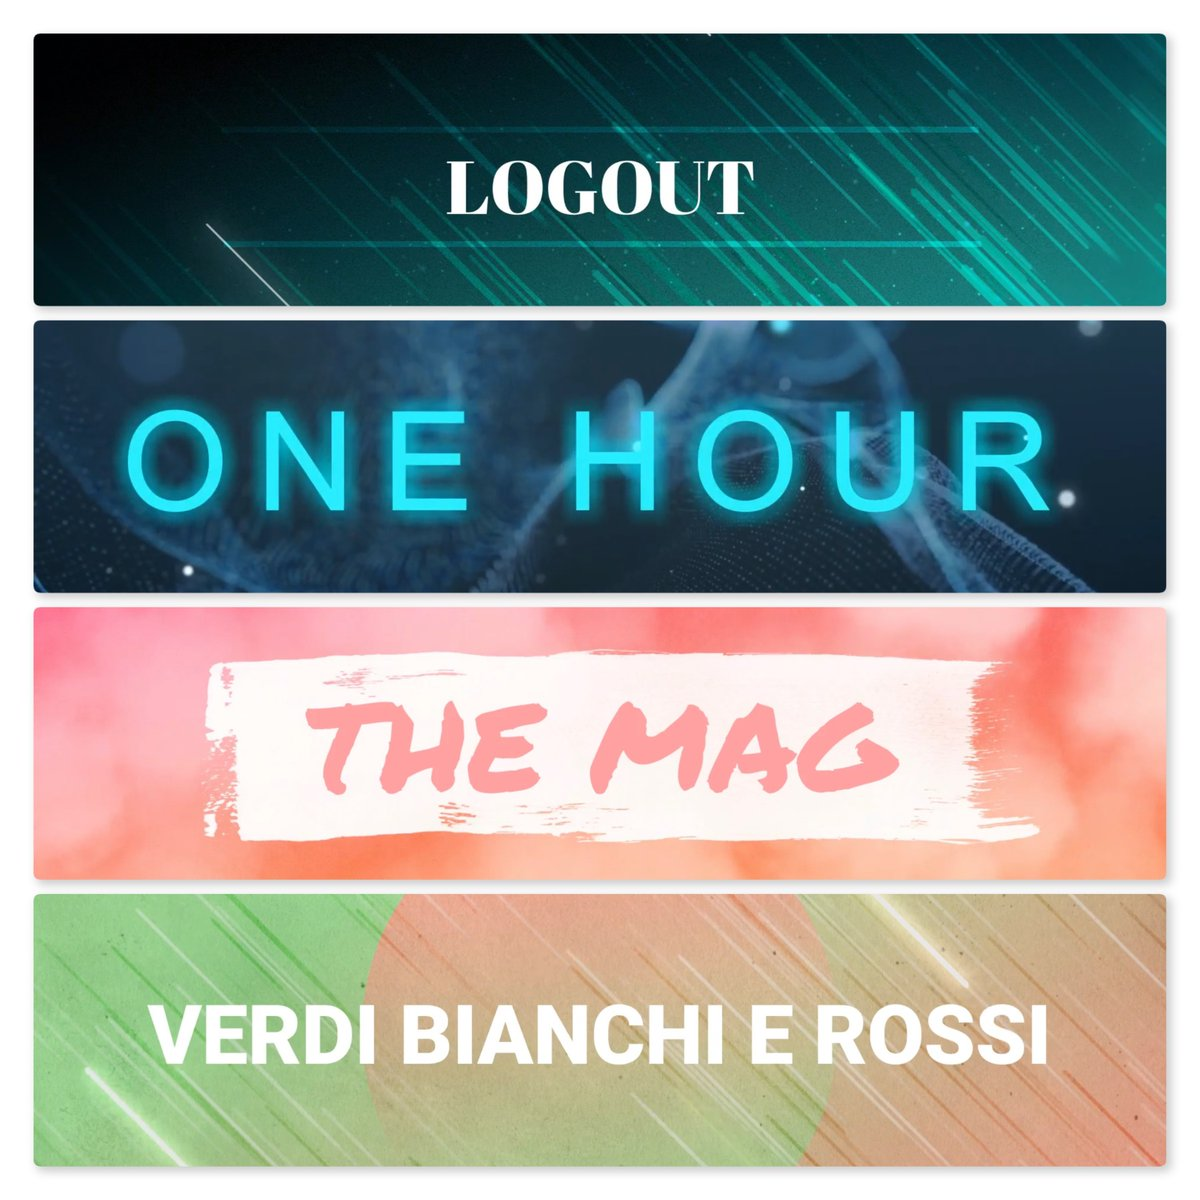 Pronti ad iniziare una nuova giornata insieme?  Dalle 8:00: LOGOUT - VERDI BIANCHI ROSSI - ONE HOUR - THE MAG   #radiofm #radiofmfaleria #artiste #beat #beats #bestsong #bumpin #love #TFLers #tweegram